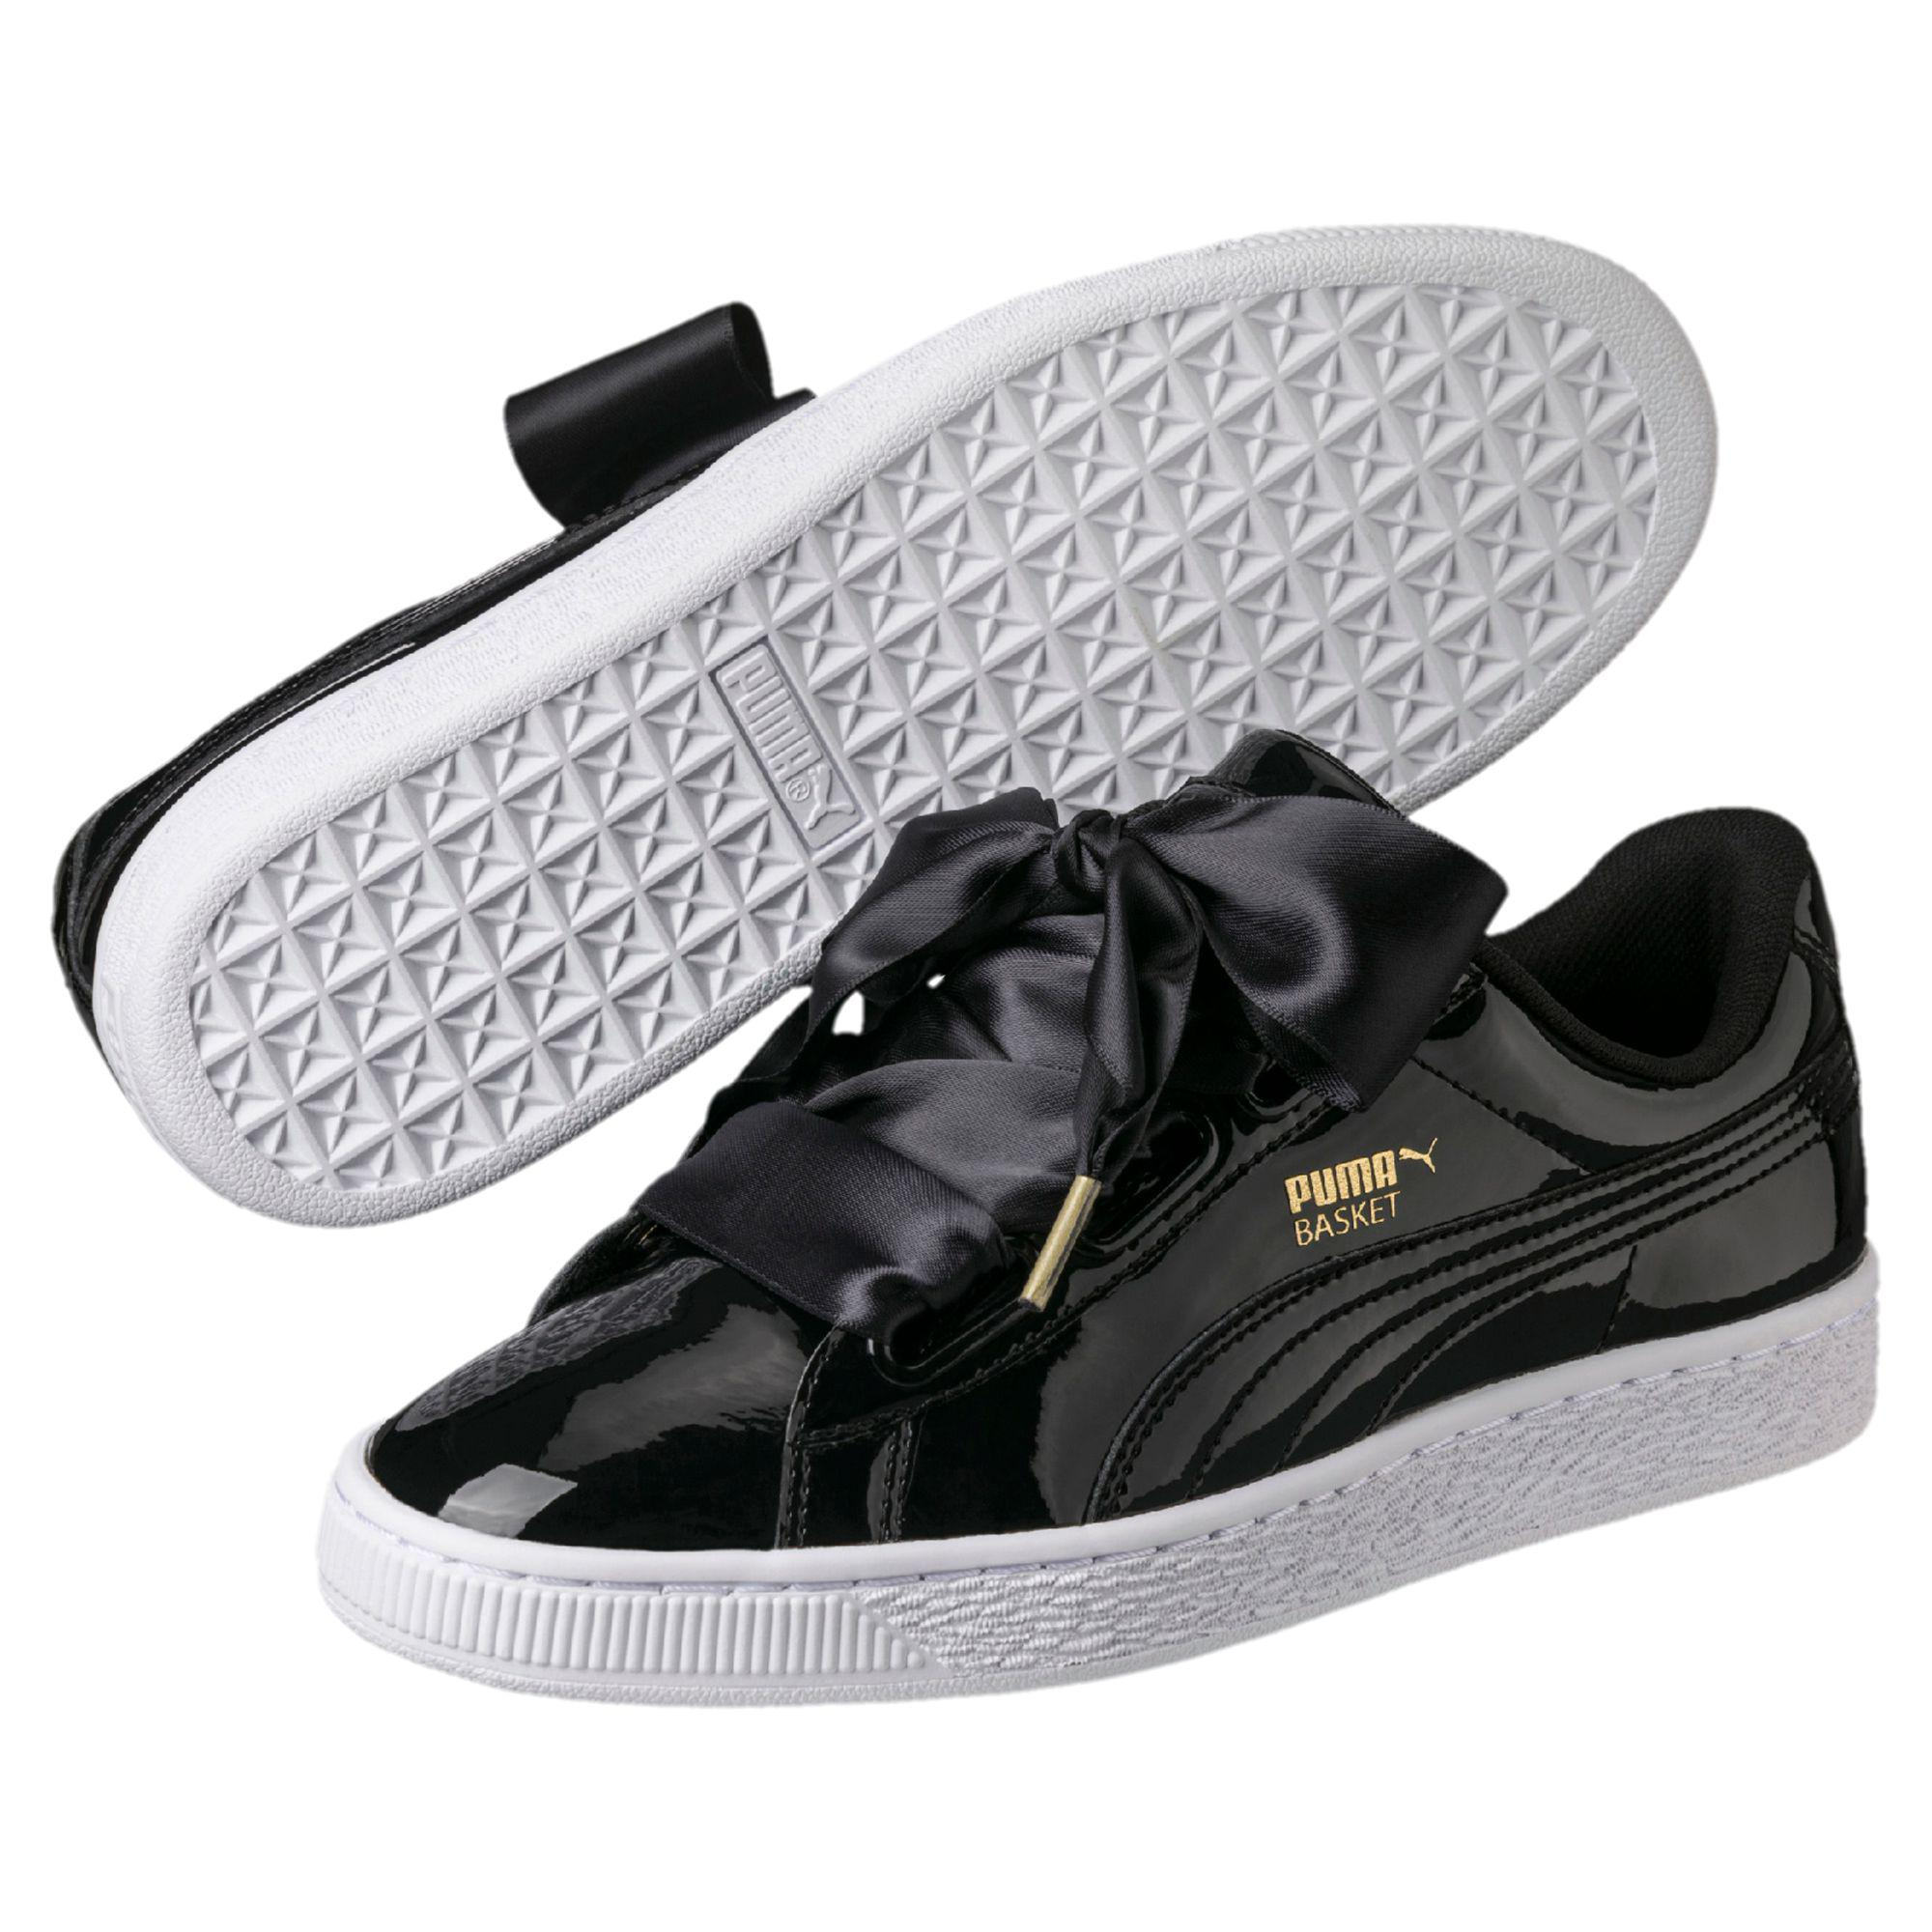 Basket Heart Patent Wn's Low-top Sneakers